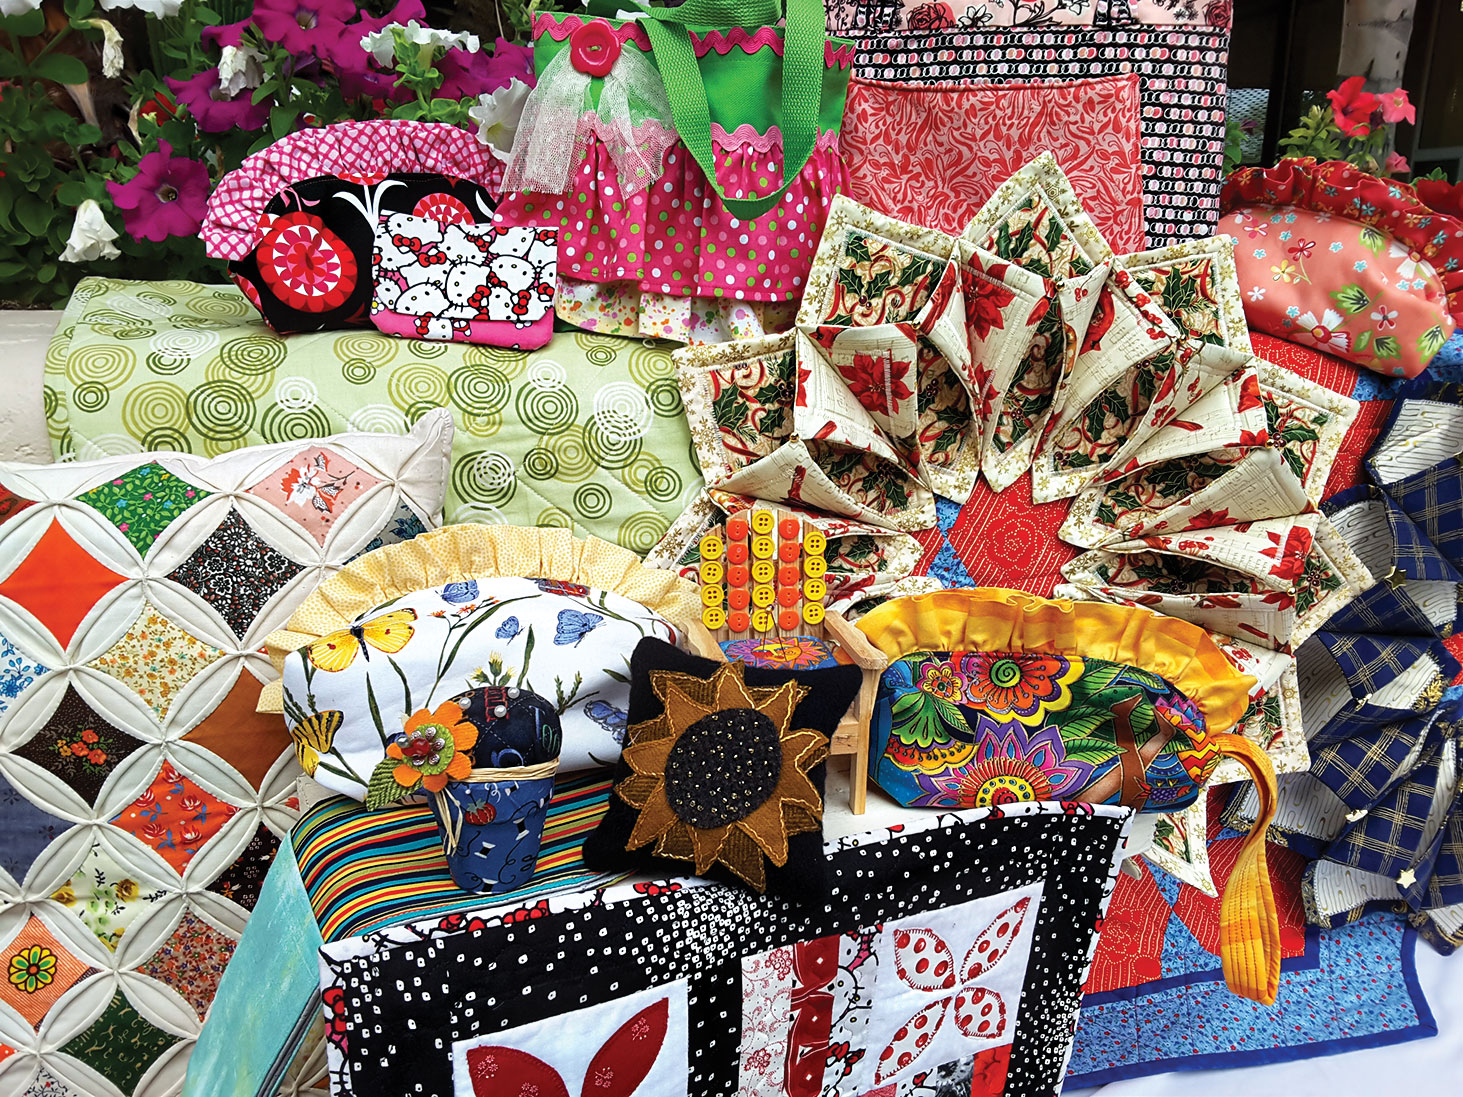 A few of the beautiful boutique table items for sale at the 8th annual Agave Quilters Guild Quilt Show Saturday, April 1, from 10:00 a.m. to 4:00 p.m. in the Sun Lakes Country Club Navajo room